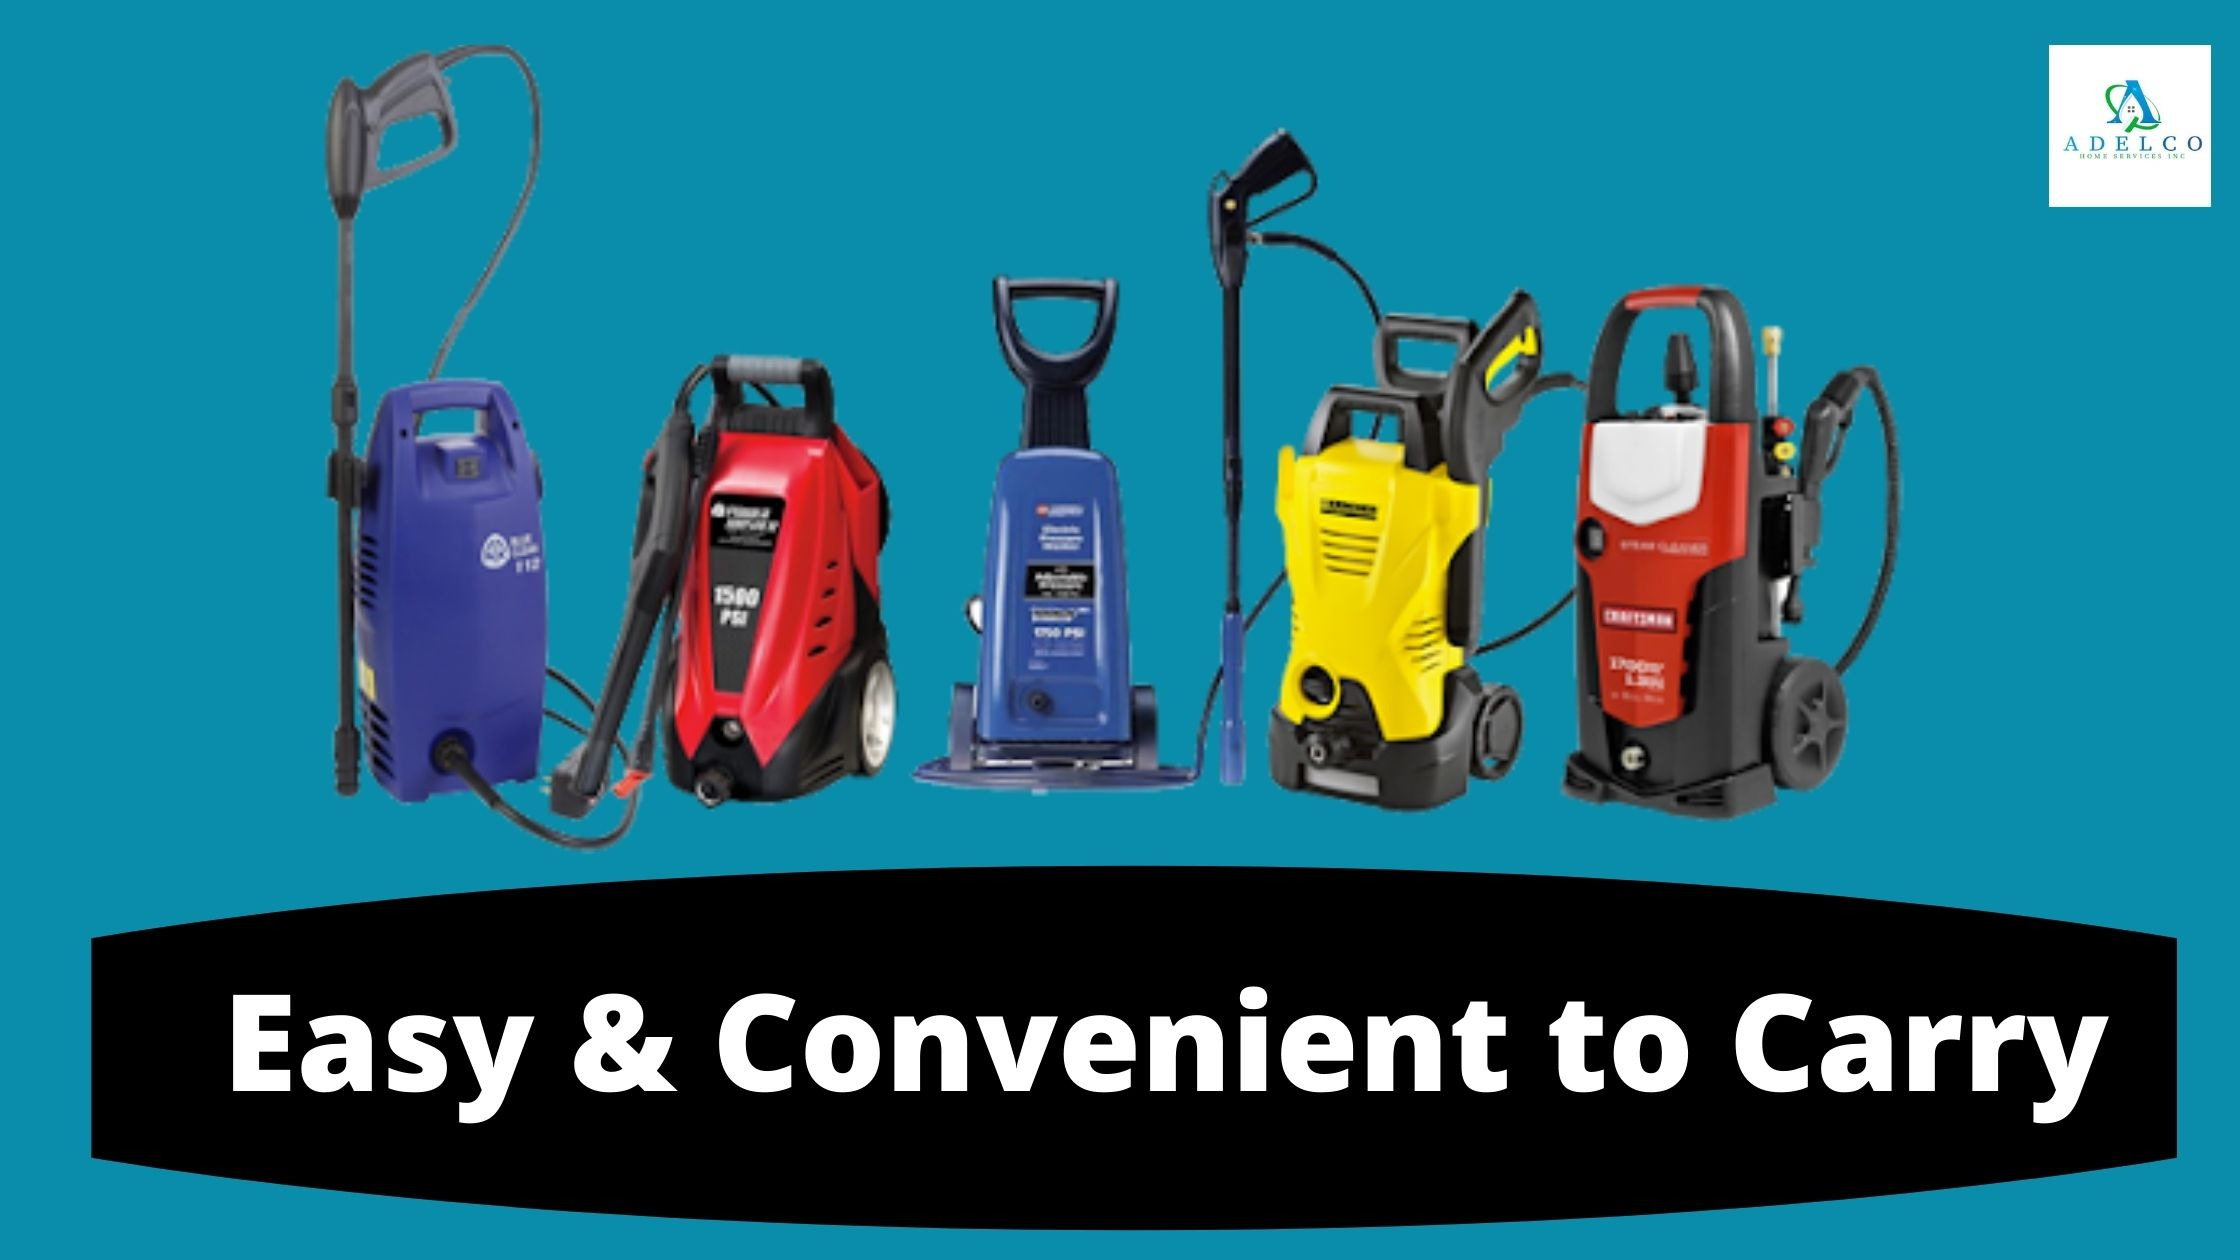 Electric Power Washer is Easy & Convenient to Carry